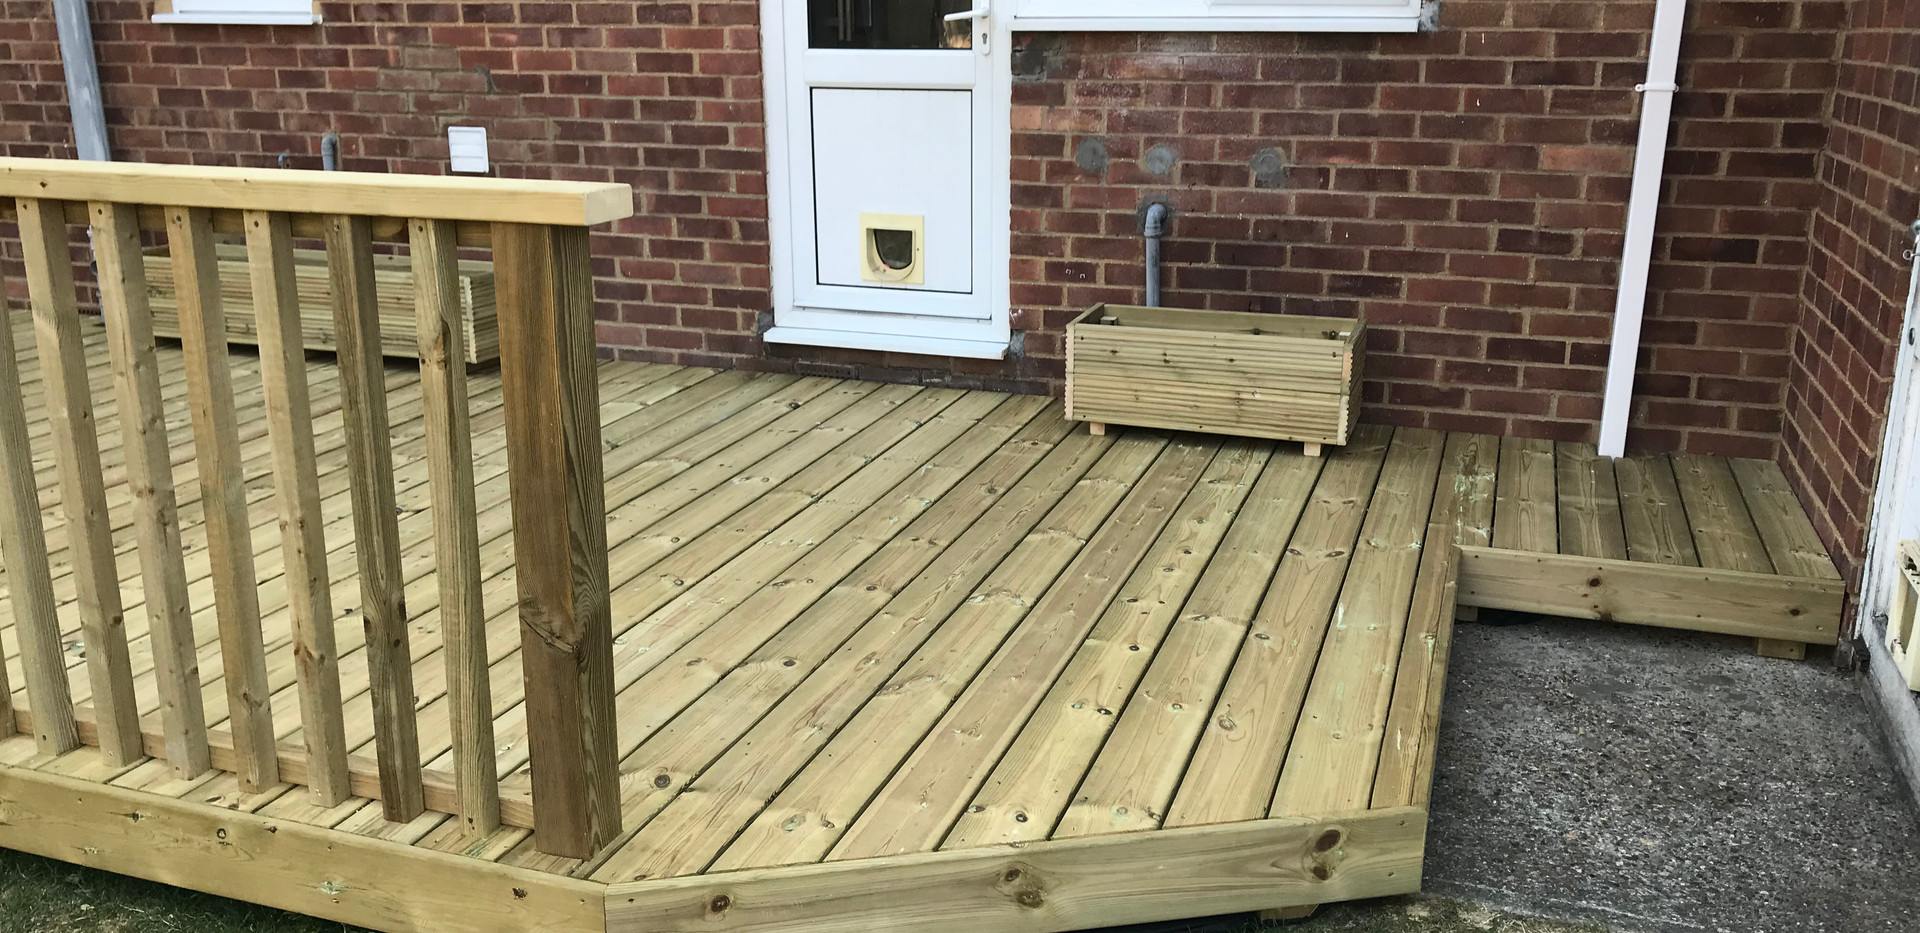 Large decking with handrails & access hatch - after